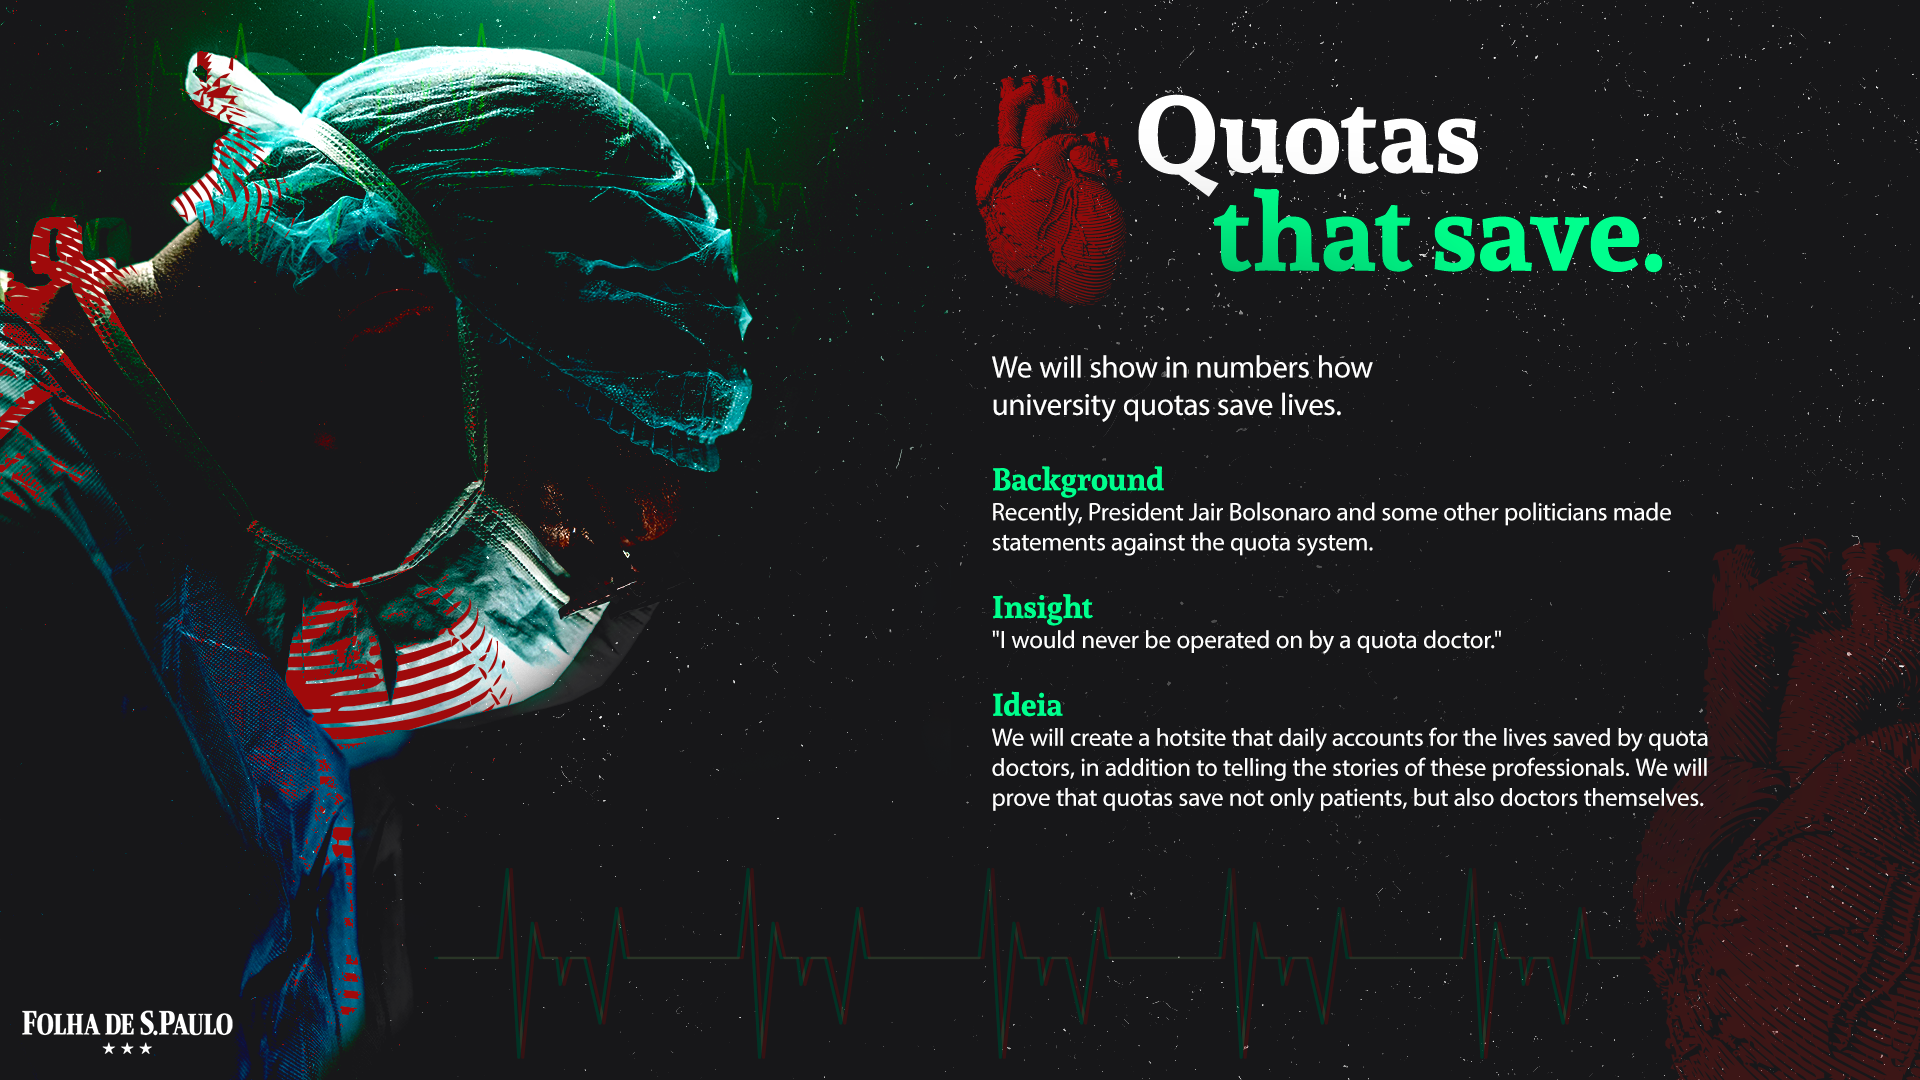 Quotas that save